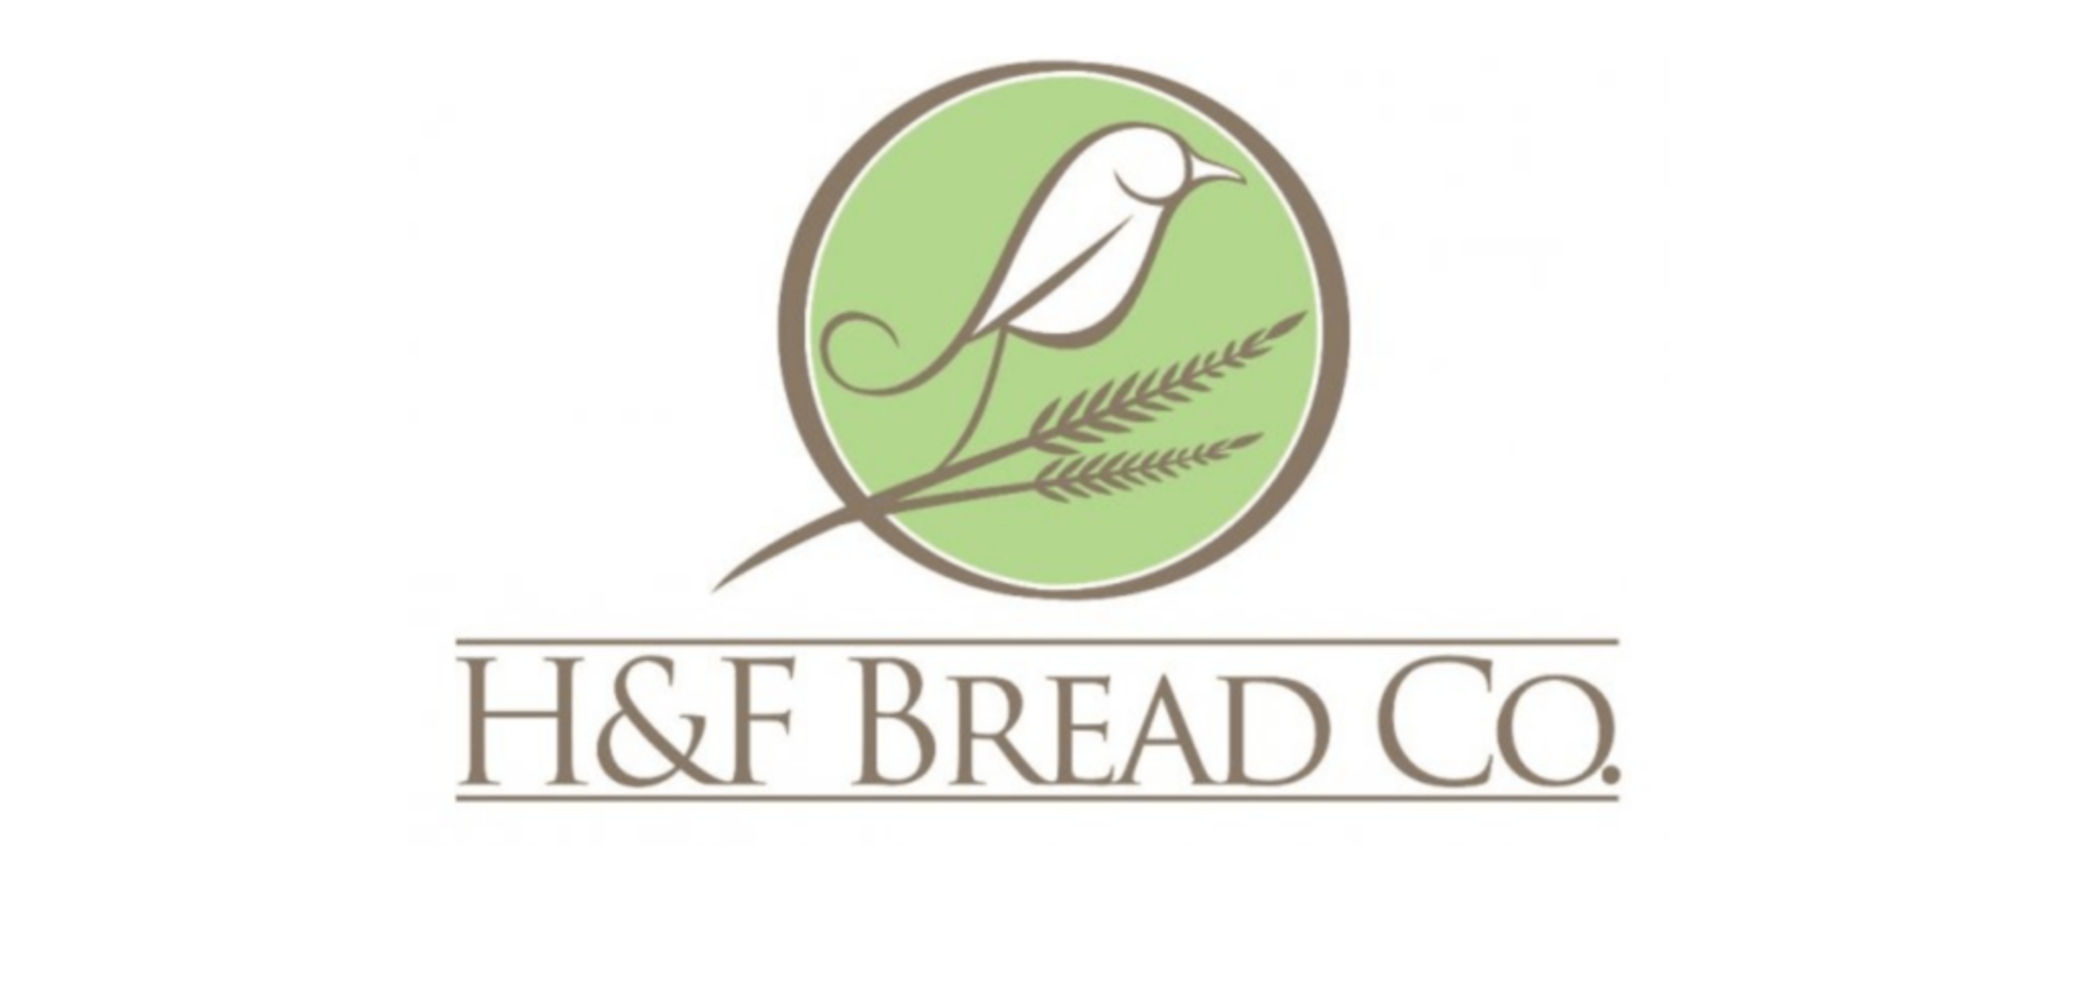 Late Model Artisan Bread Plant: CLOSING EXTENDED TO 10/27 - 2015 SS Tunnel Oven, New Flour System, Konig Bread Line, W&P Pretzel Line